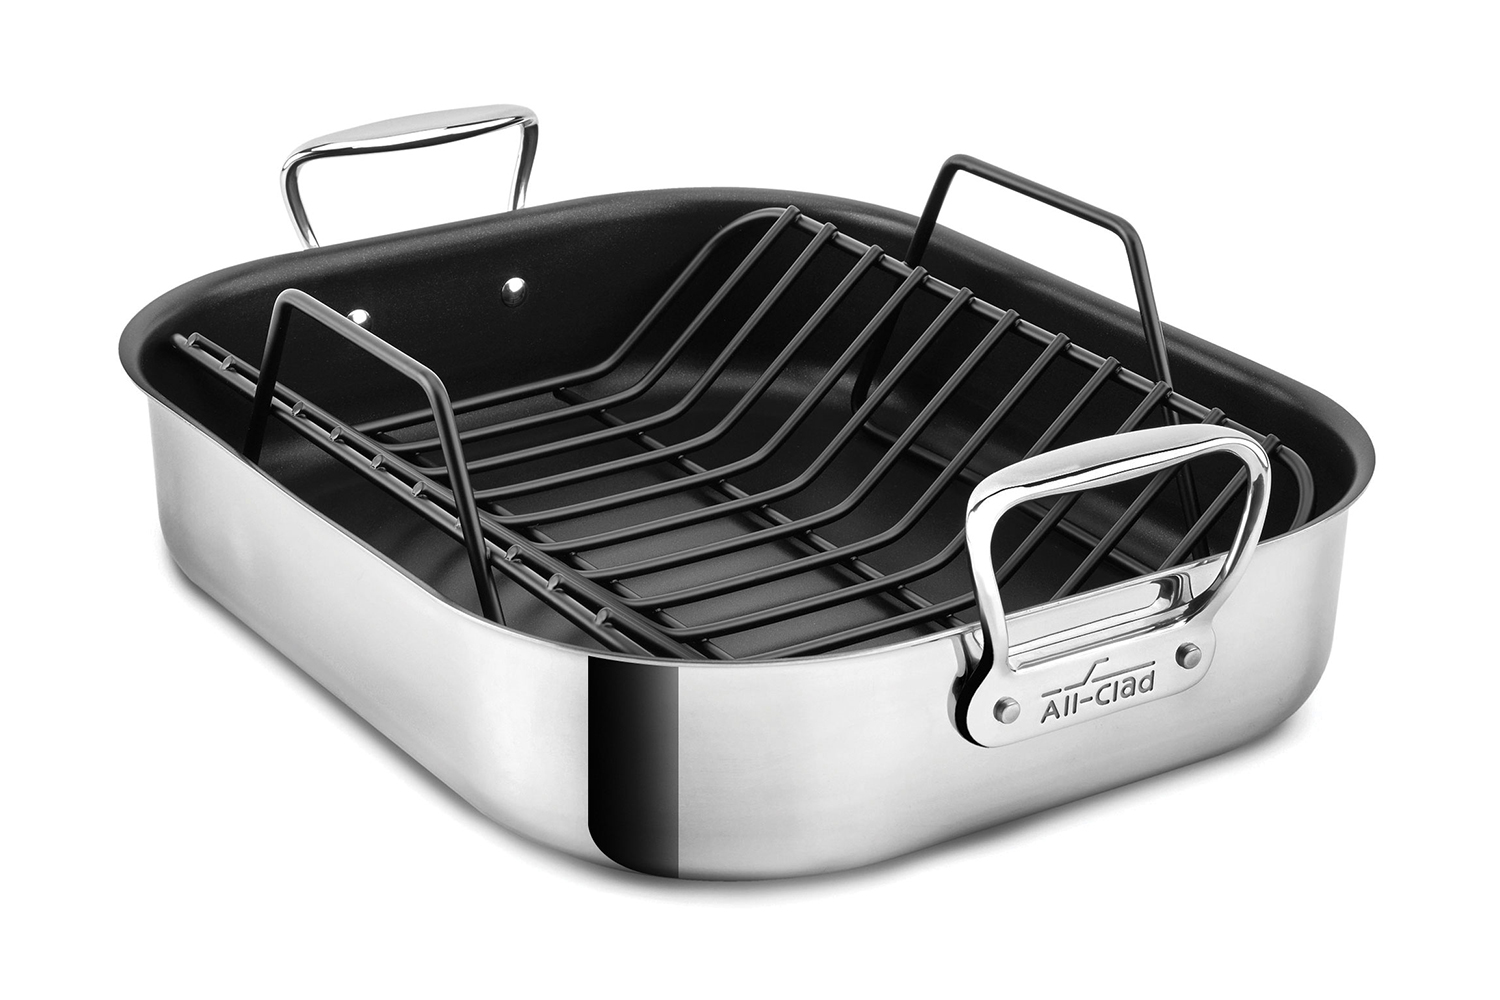 All-Clad Stainless Steel 16 x 13 in Nonstick Large Roasting Pan w/Rack